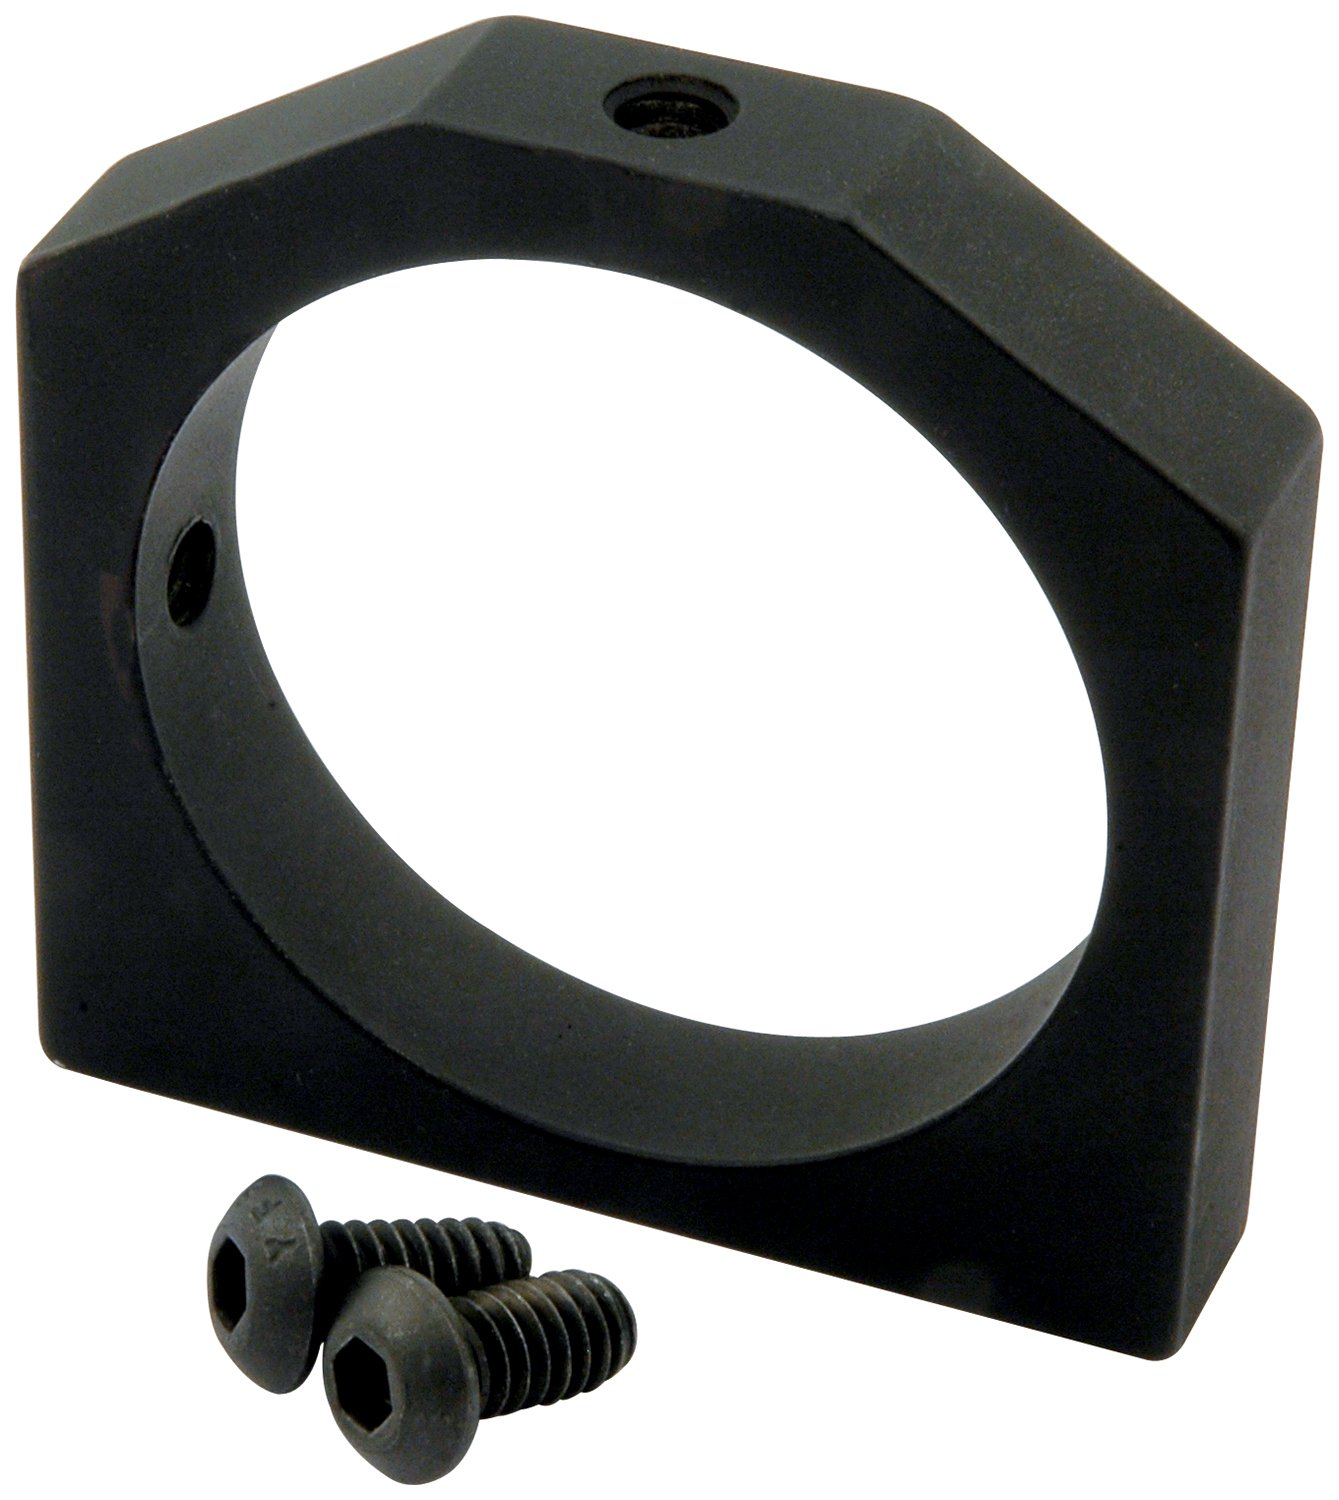 Amazon.com: Allstar ALL40235 Flush Mount Fuel Filter Bracket for Allstar  Inline Fuel Filter: Automotive